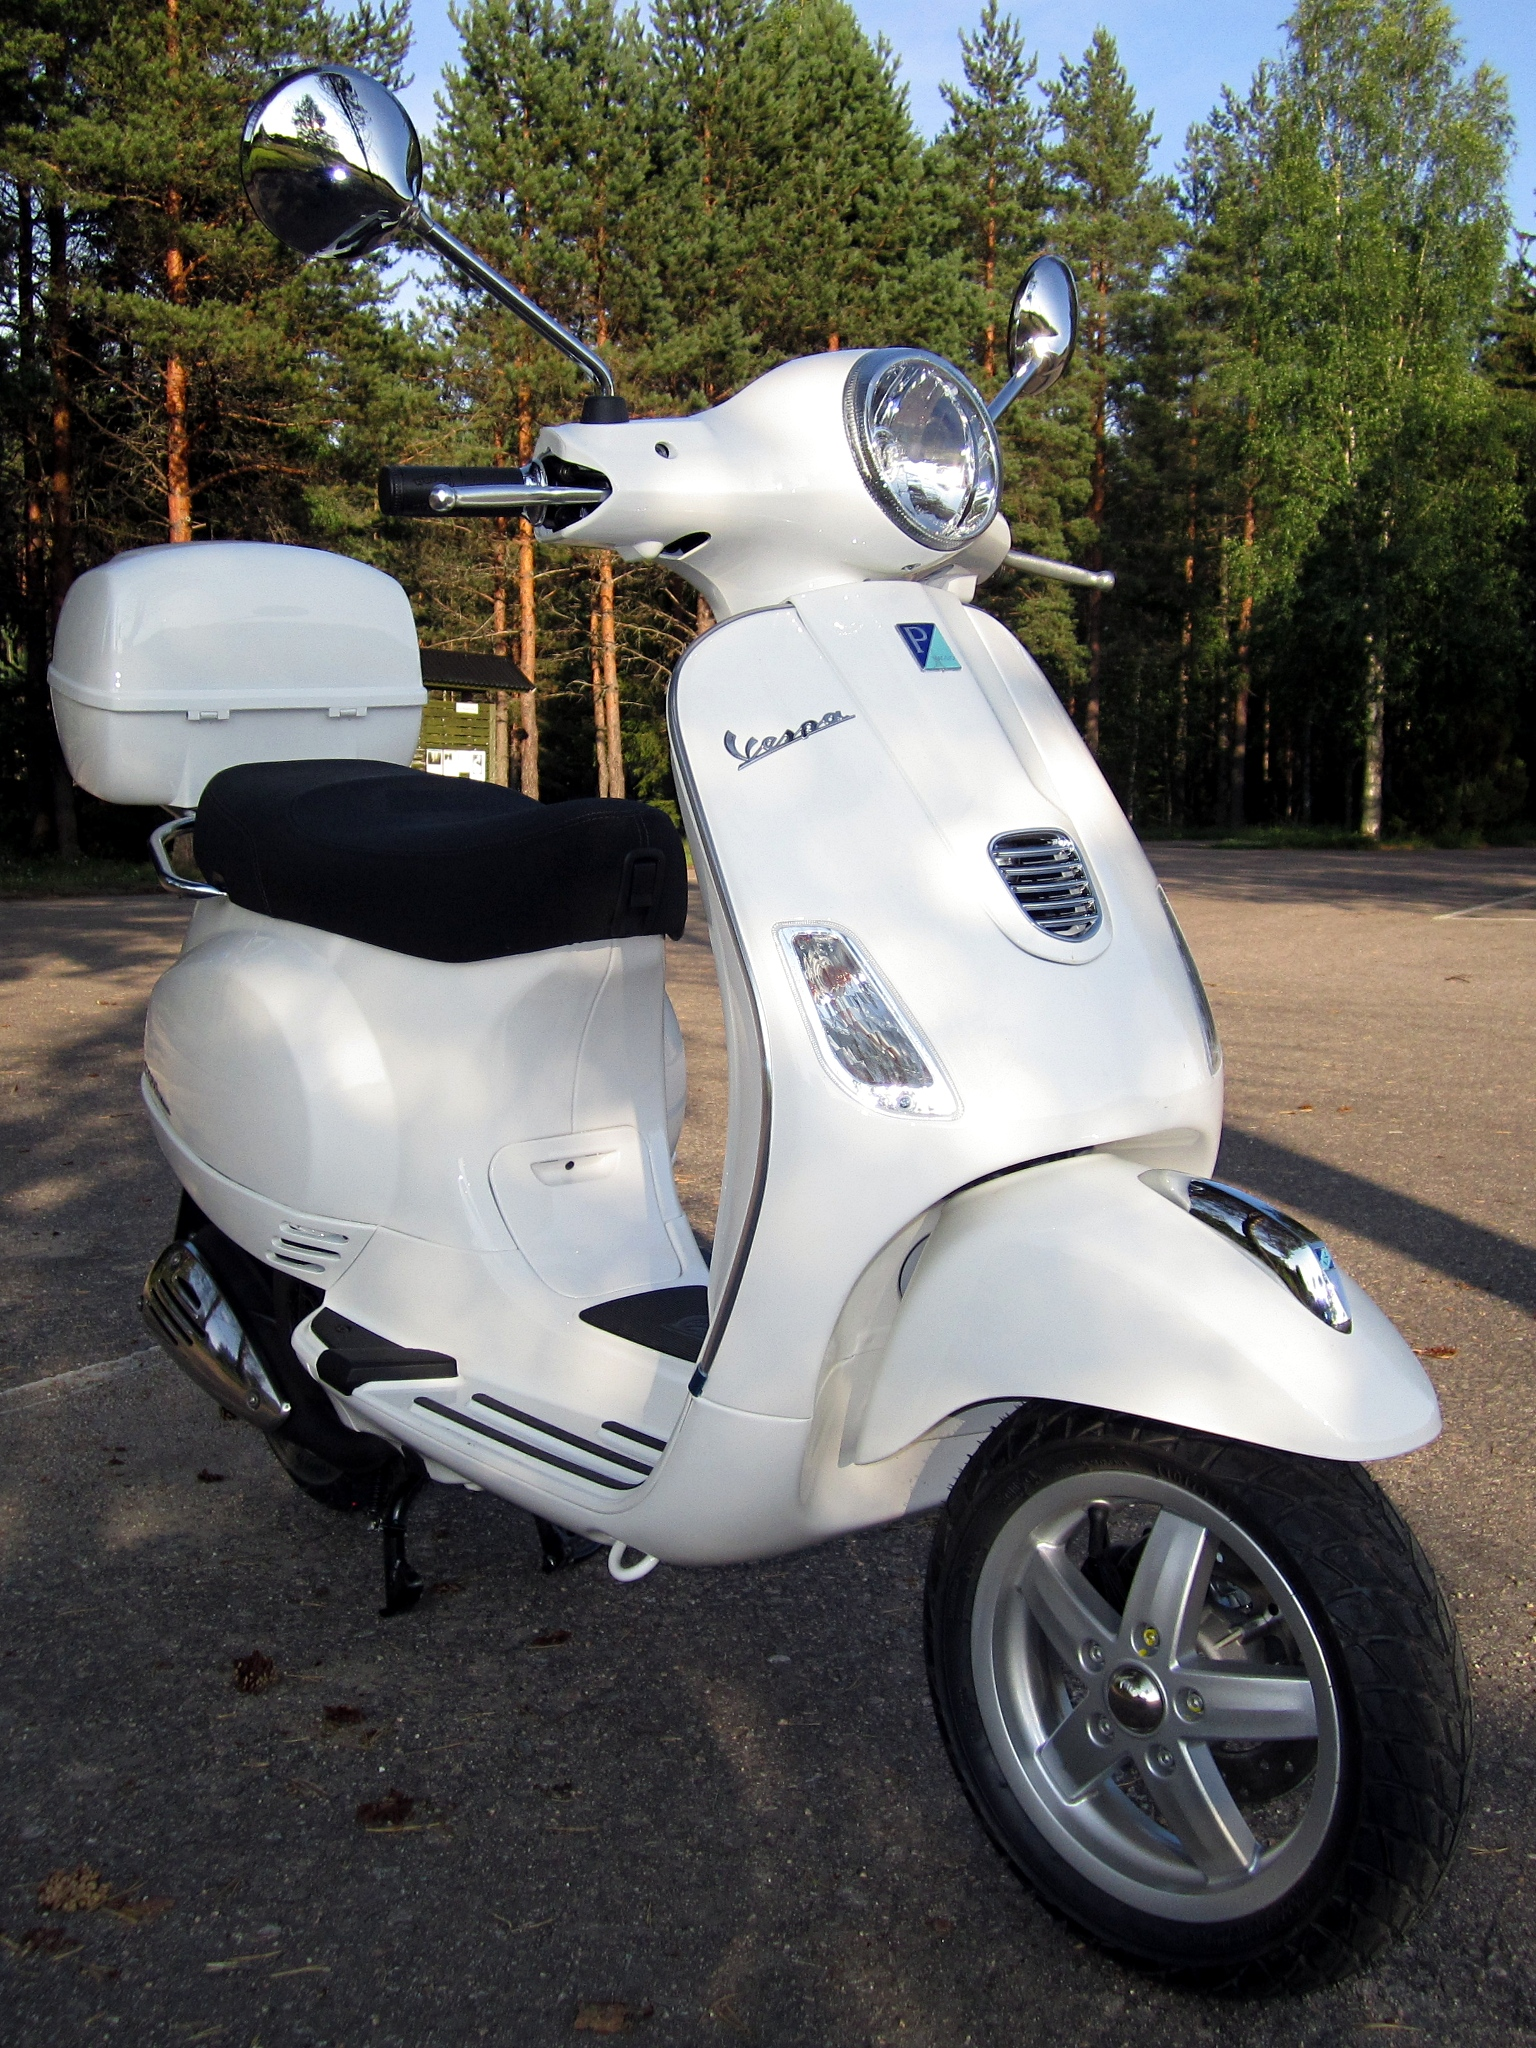 Moto vespa 150 photo - 9